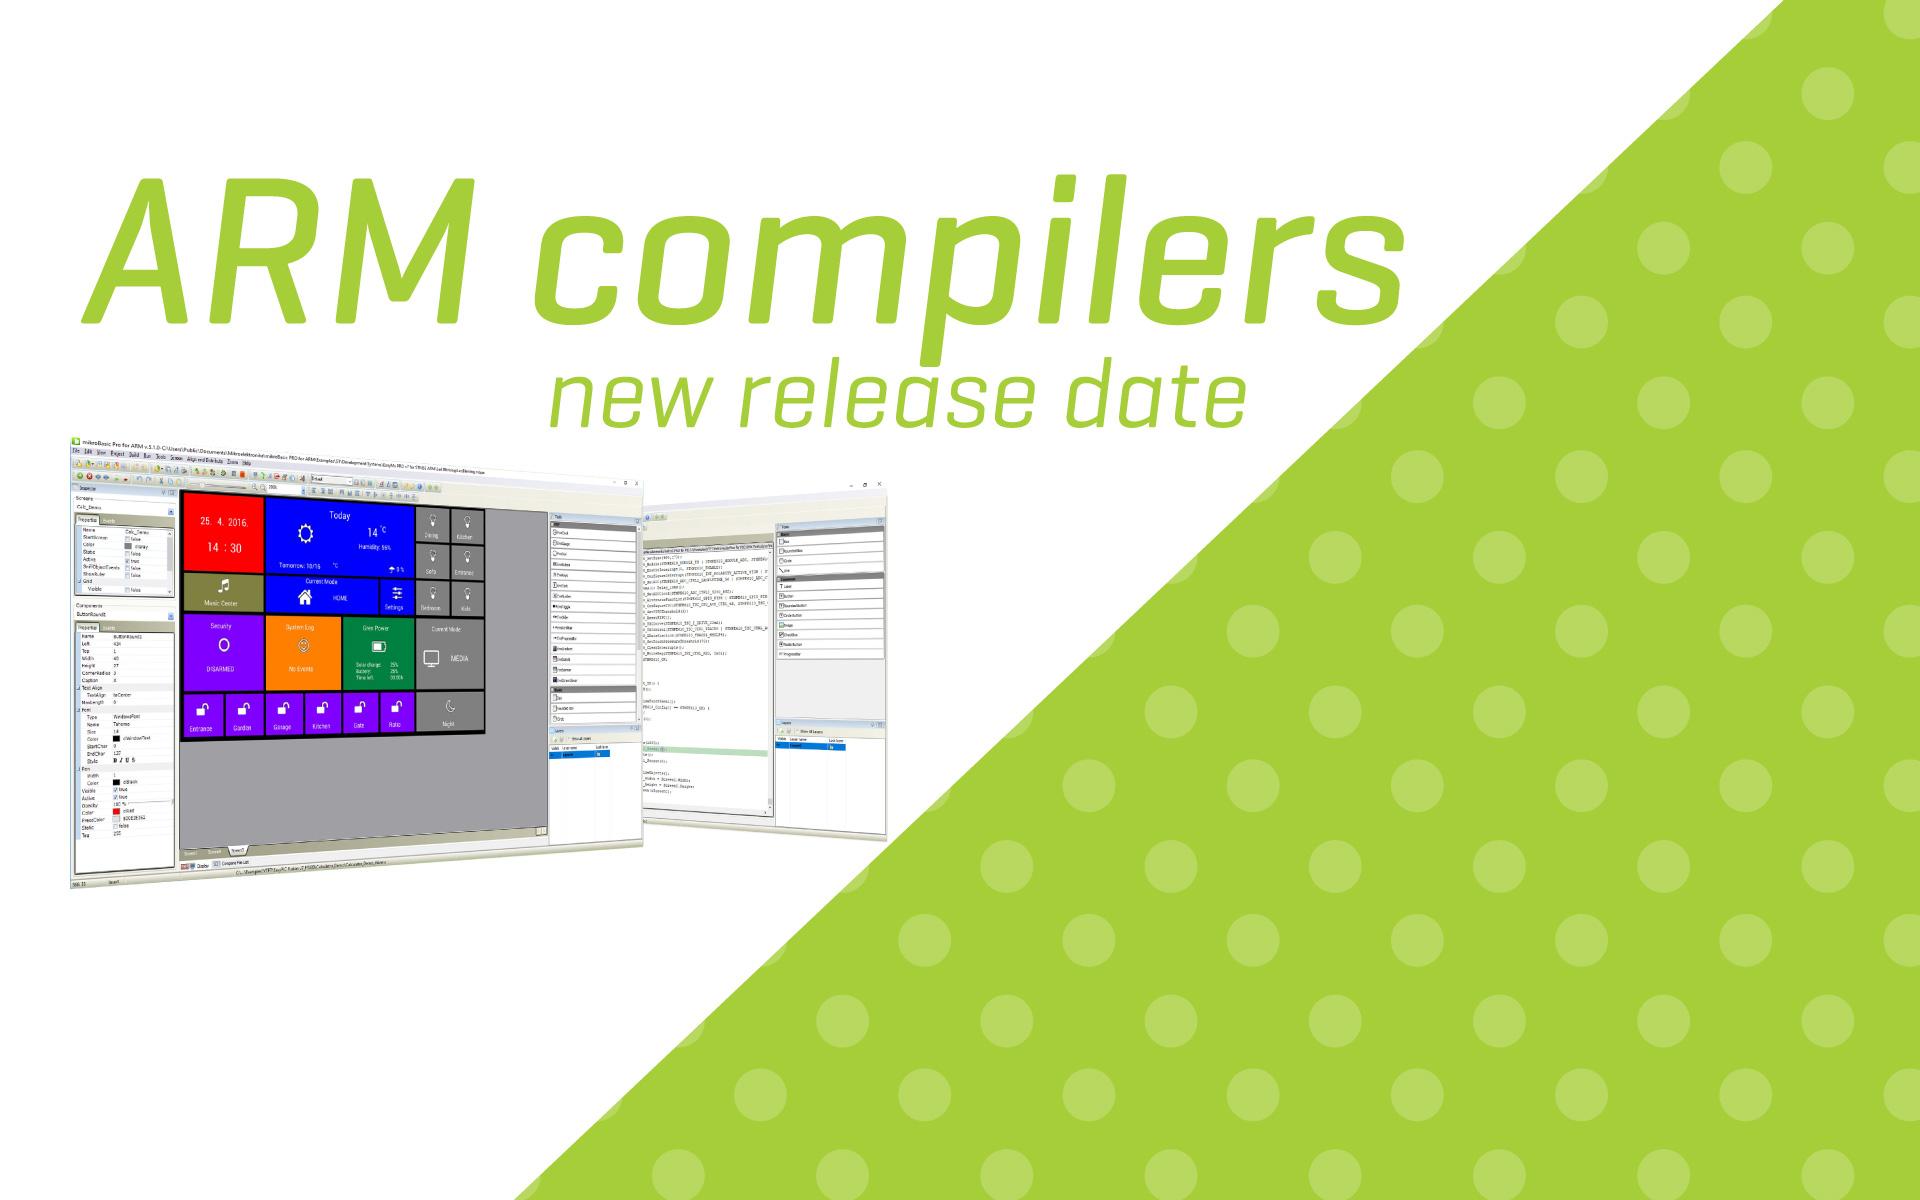 ARM compilers version 6.0.0 - new release date